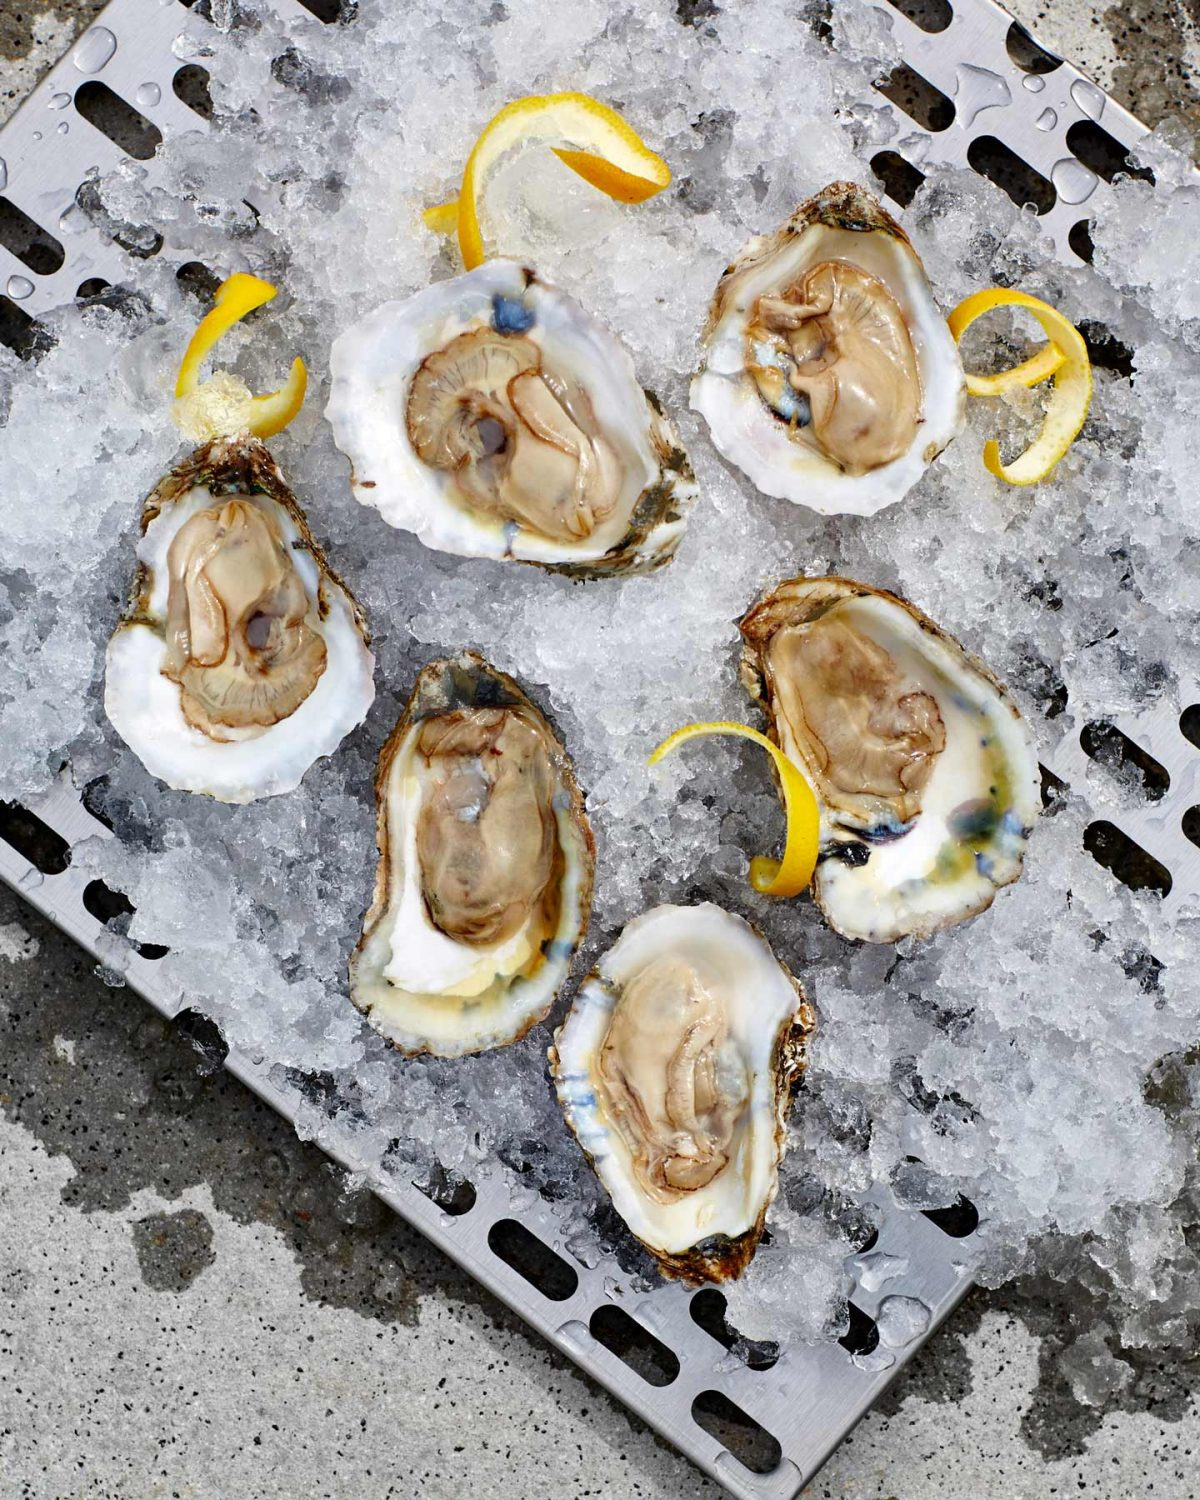 Lifestyle food photography of half-shell oysters on a bed of ice